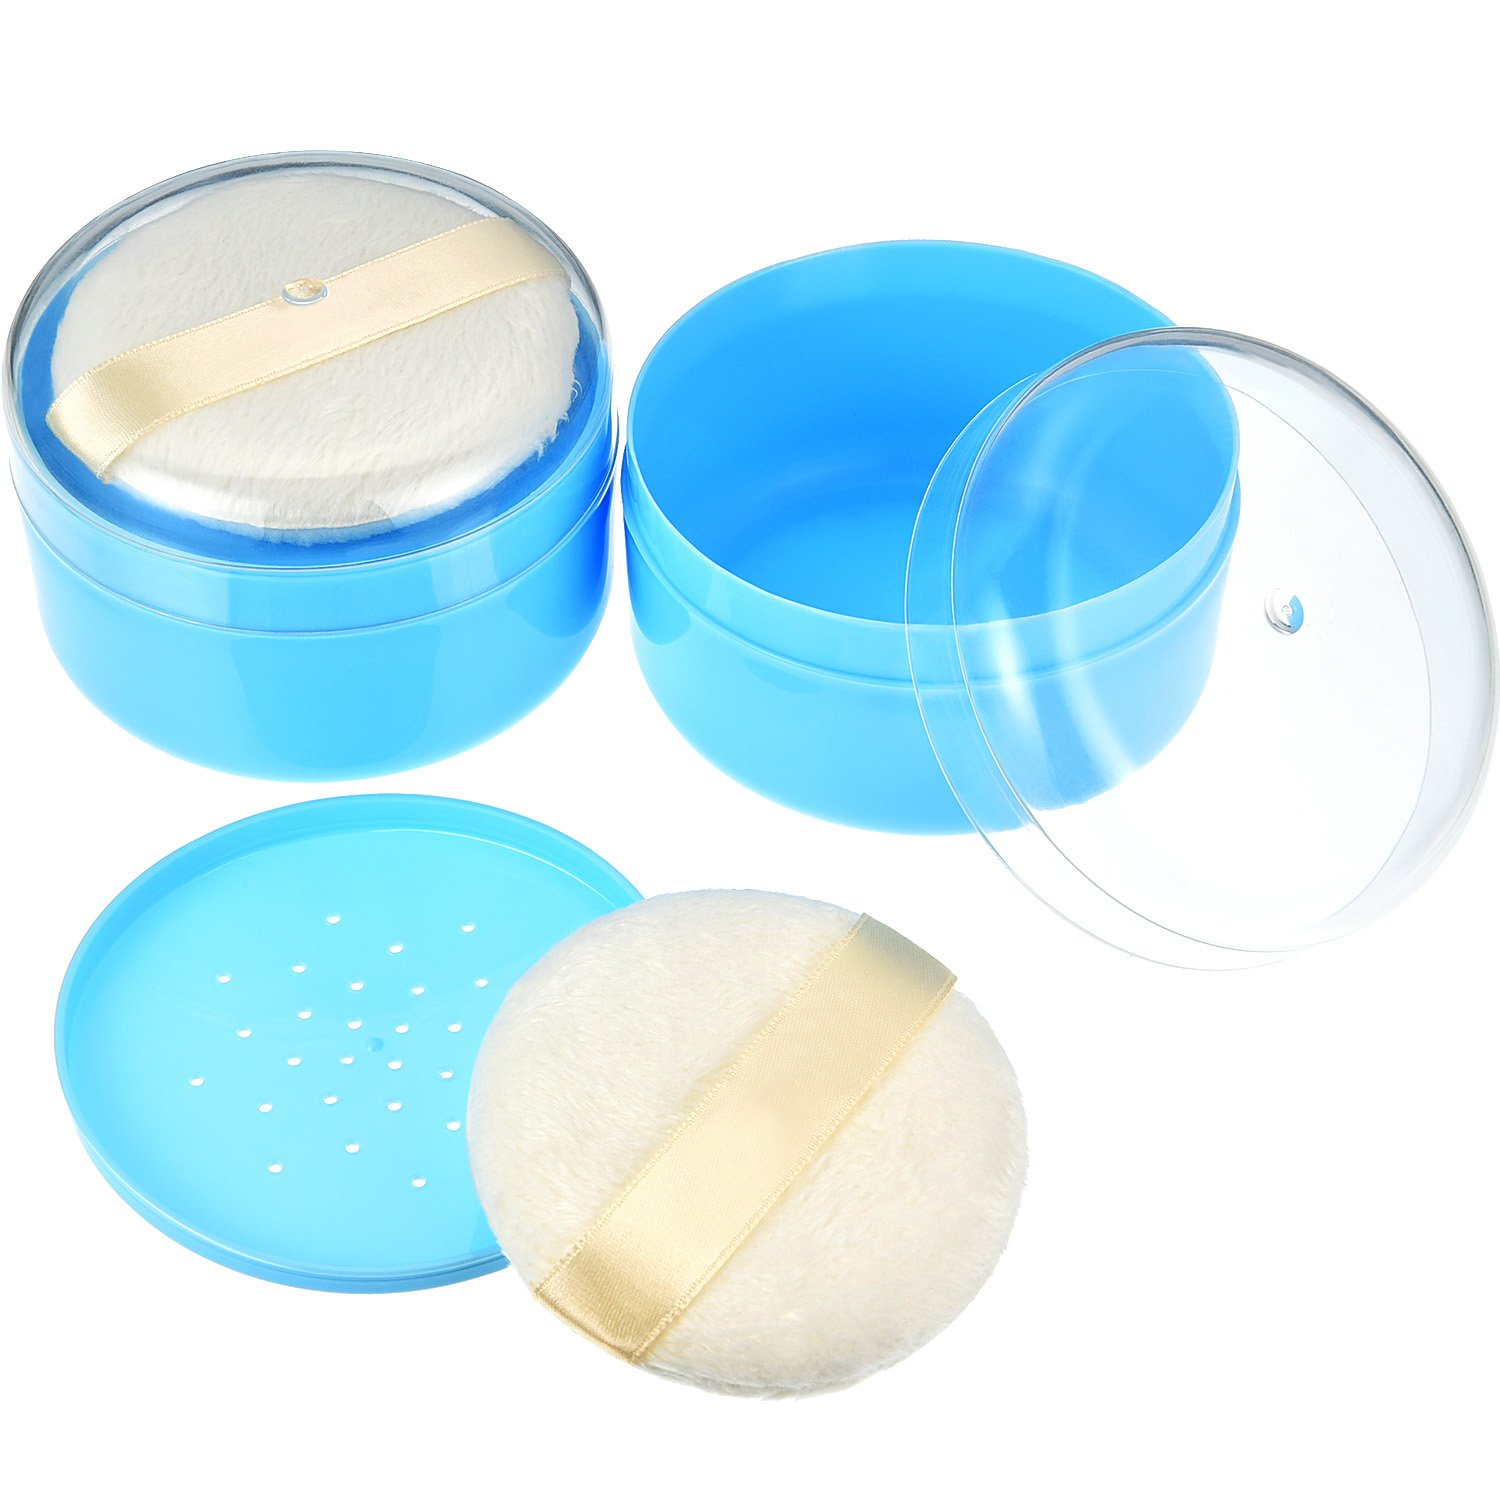 Gejoy 2 Sets After-Bath Powder Puff Box Empty Body Powder Container with Bath Powder Puffs and Sifter for Home and Travel